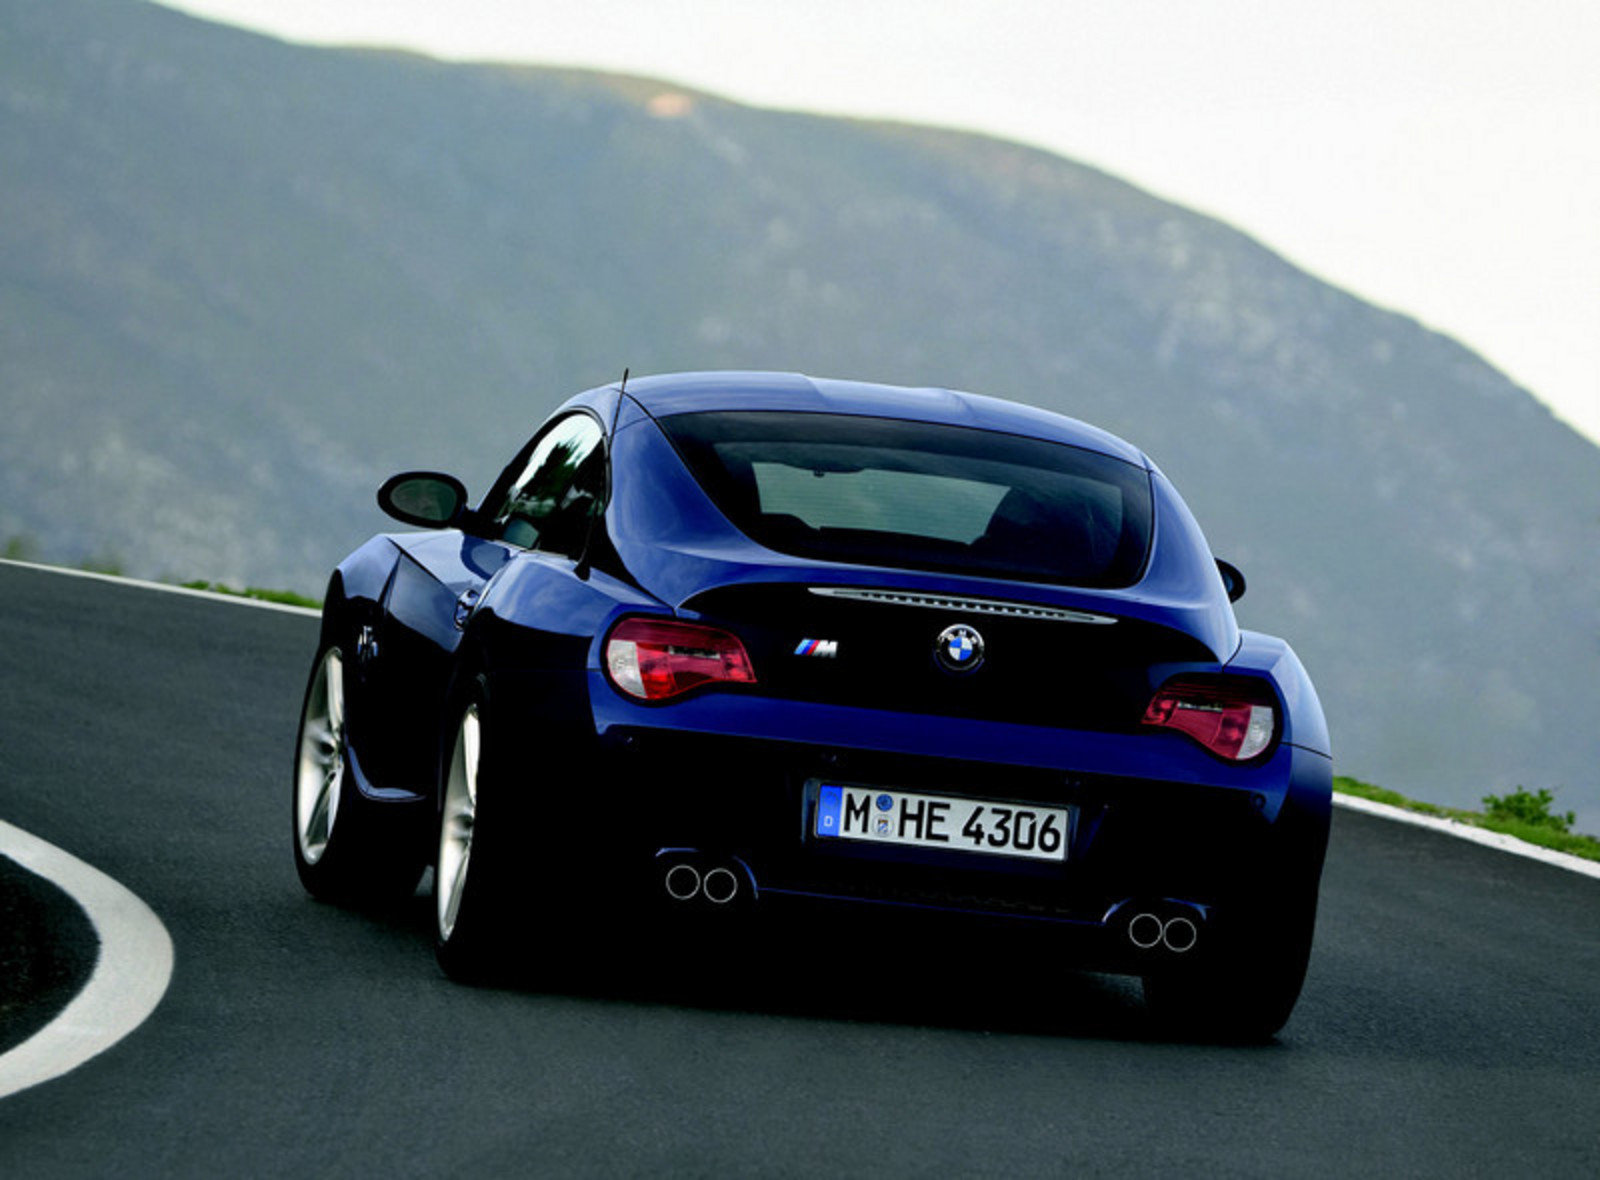 2007 Bmw Z4 M Coupe Picture 35723 Car Review Top Speed 1127109